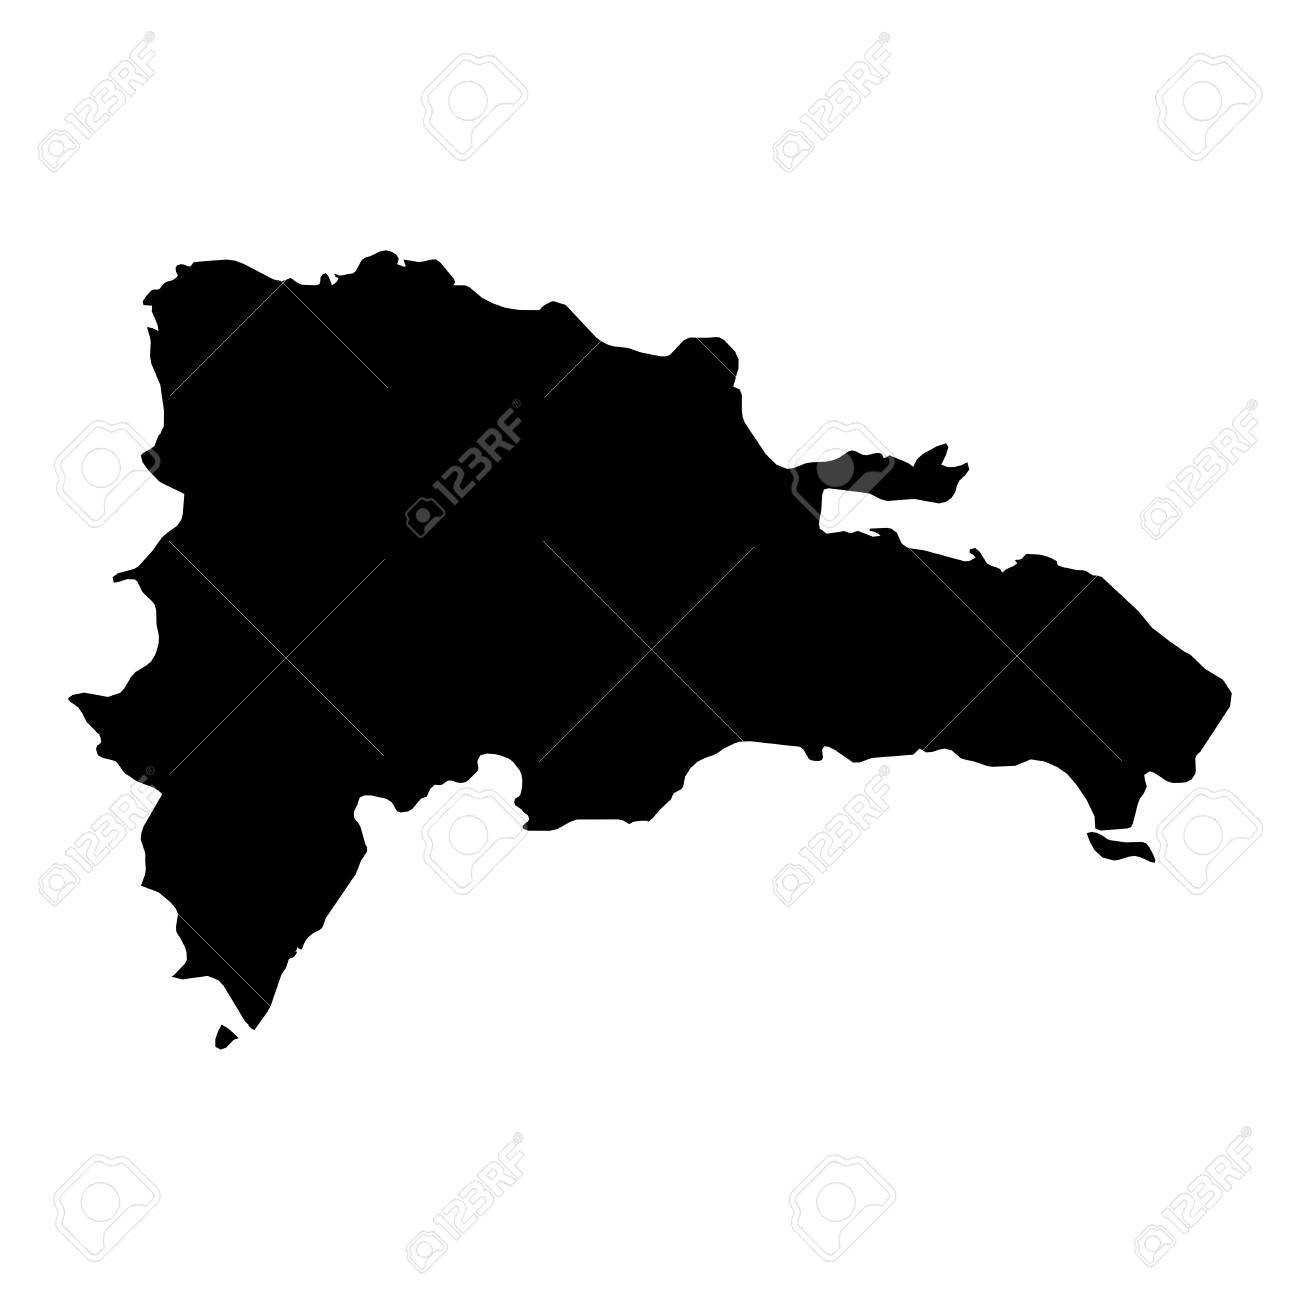 Dominican Republic Black Silhouette Map Outline Isolated On White     Dominican Republic Black Silhouette Map Outline Isolated on White 3D  Illustration Stock Illustration   81368383